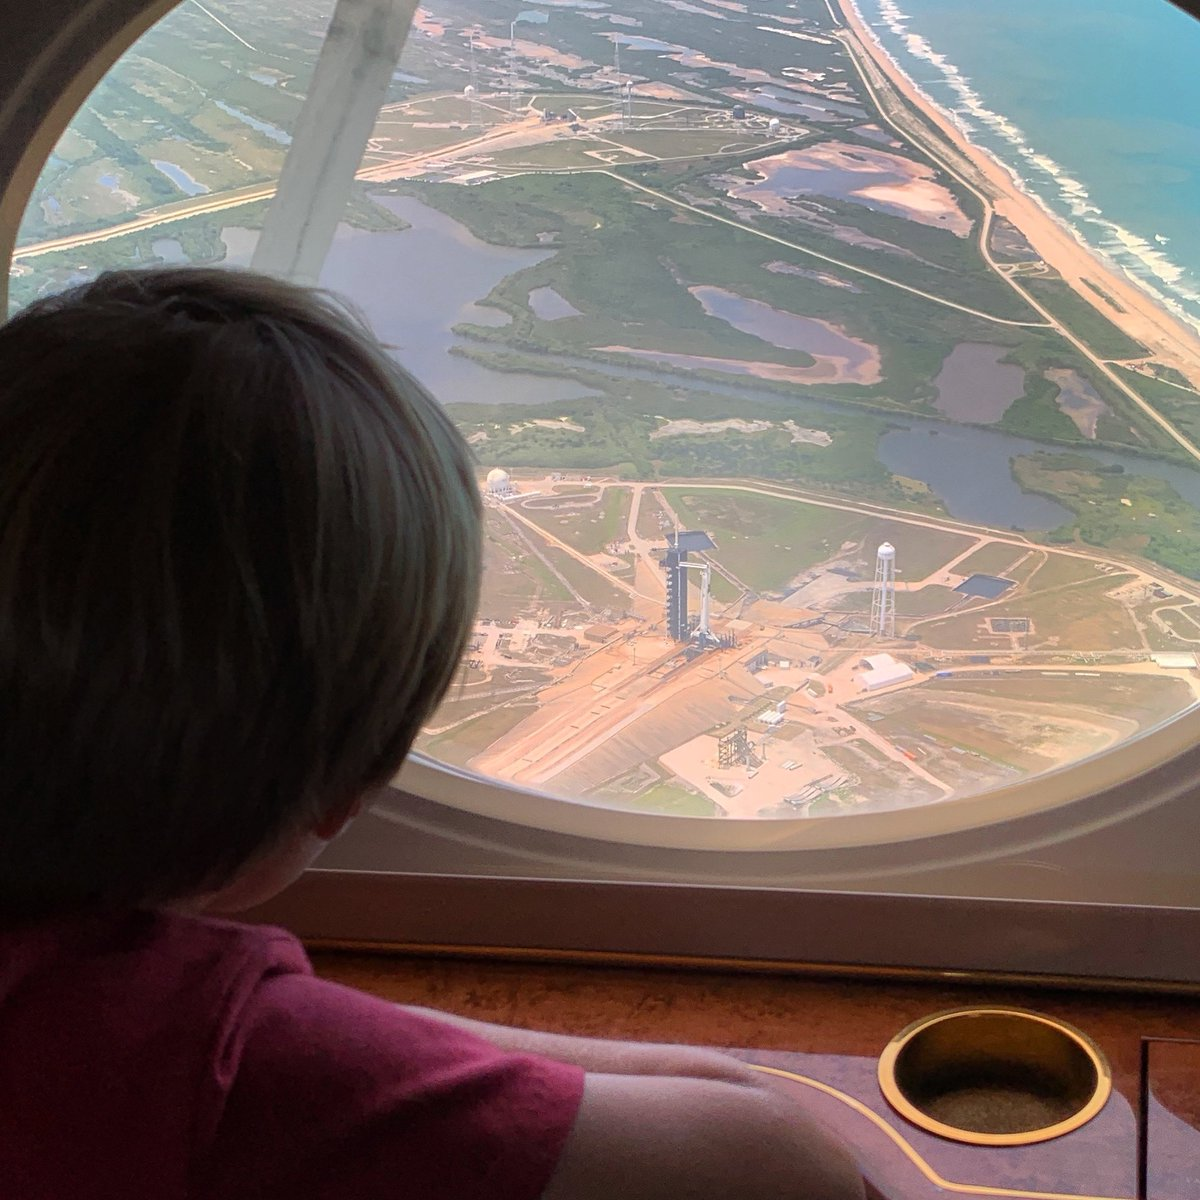 Arriving in Florida with a flyby of your dad's spaceship on the launch pad... Priceless. #LaunchAmerica #CrewDragon